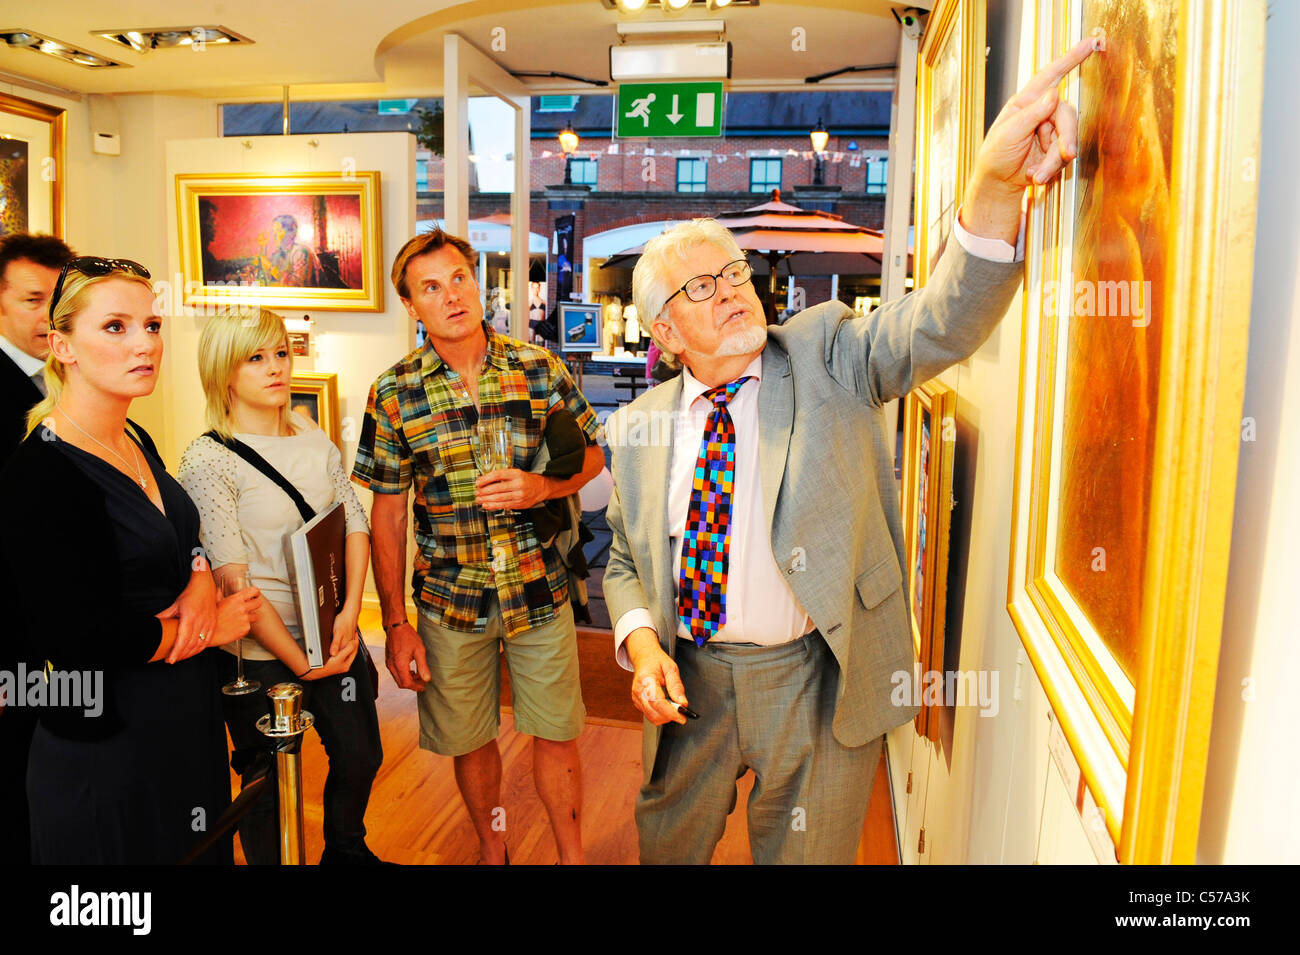 rolf harris talks through one of his paintings with members of the public at a art gallery in Windsor - Stock Image